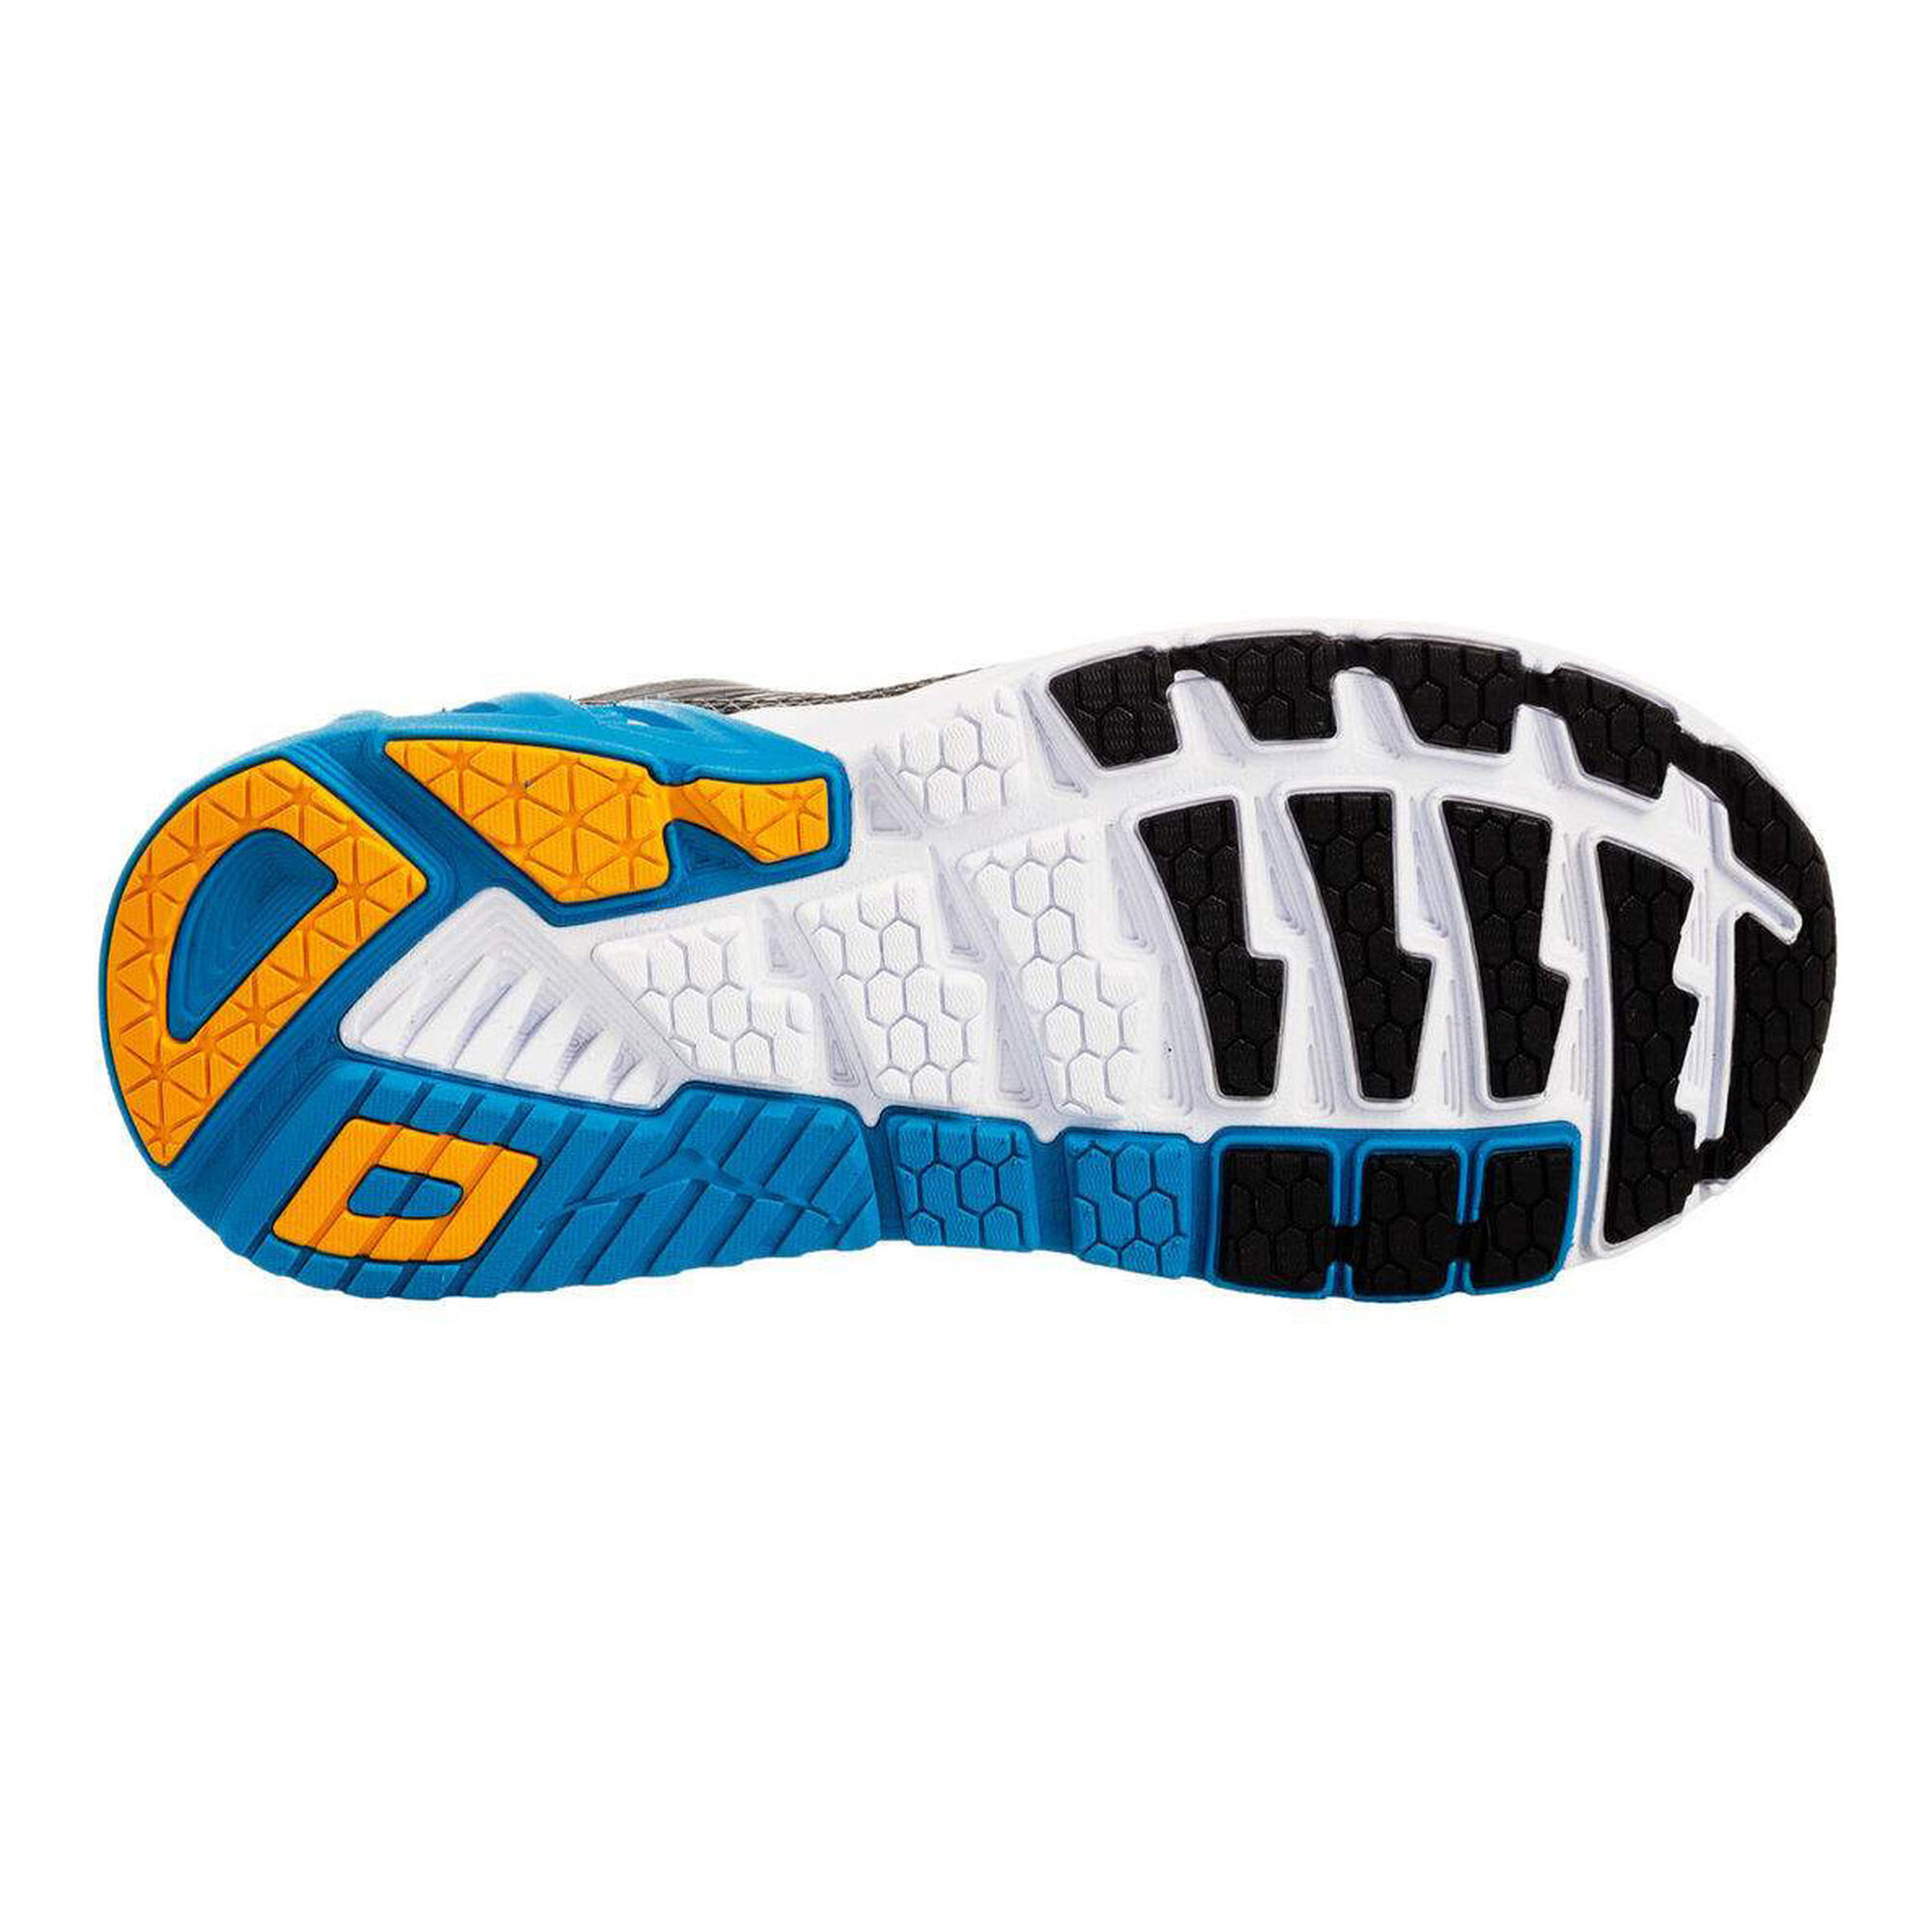 buy Hoka One One Arahi 2 Stability Running Shoe Men - Dark Blue ... 34c8a90455c